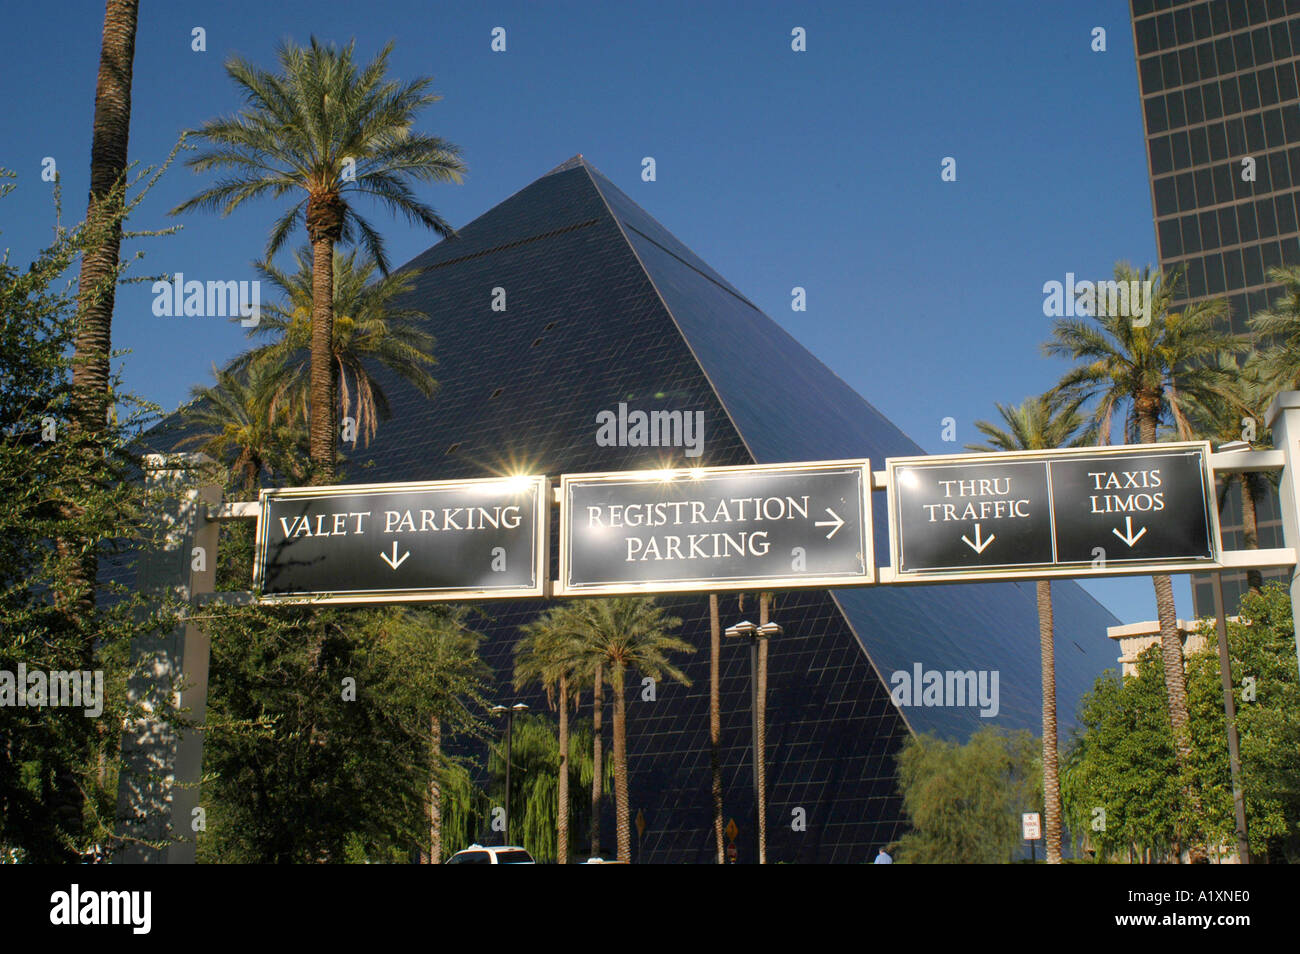 Palm trees and illuminated direction signs showing the way